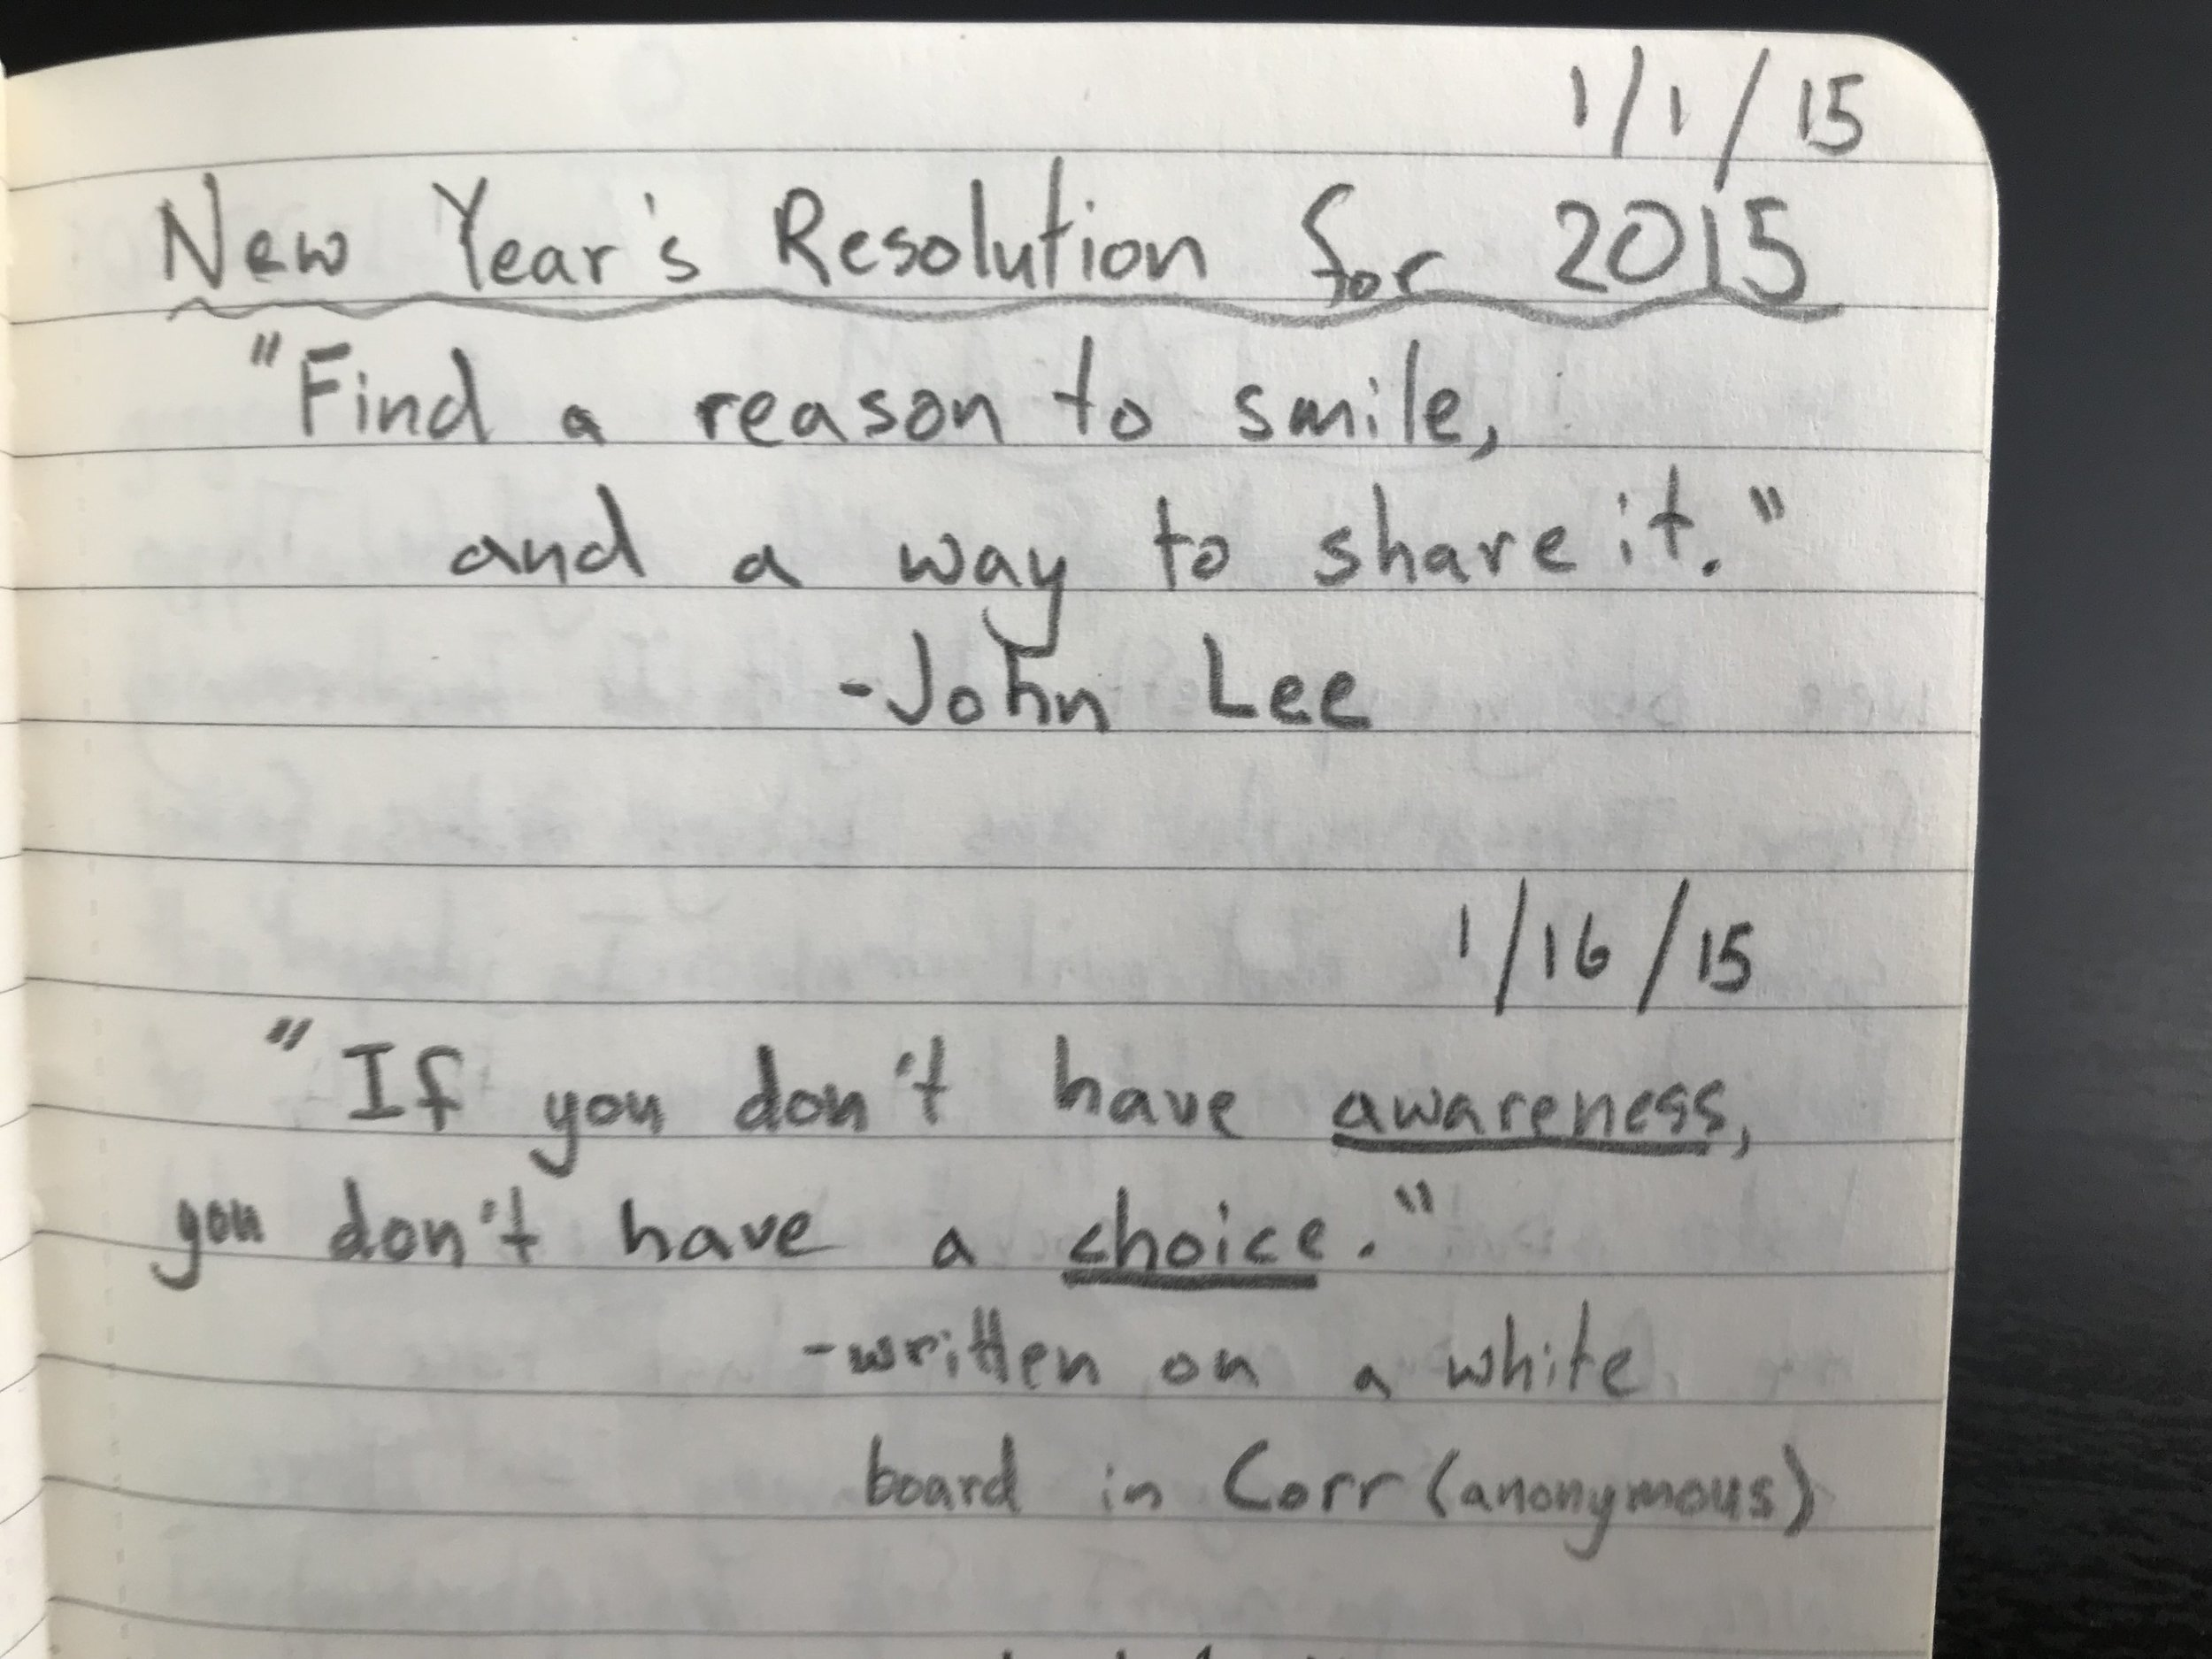 My 2015 resolution (yes, I quoted myself haha)and a quote I found on a white board in Corr Hall at Villanova University